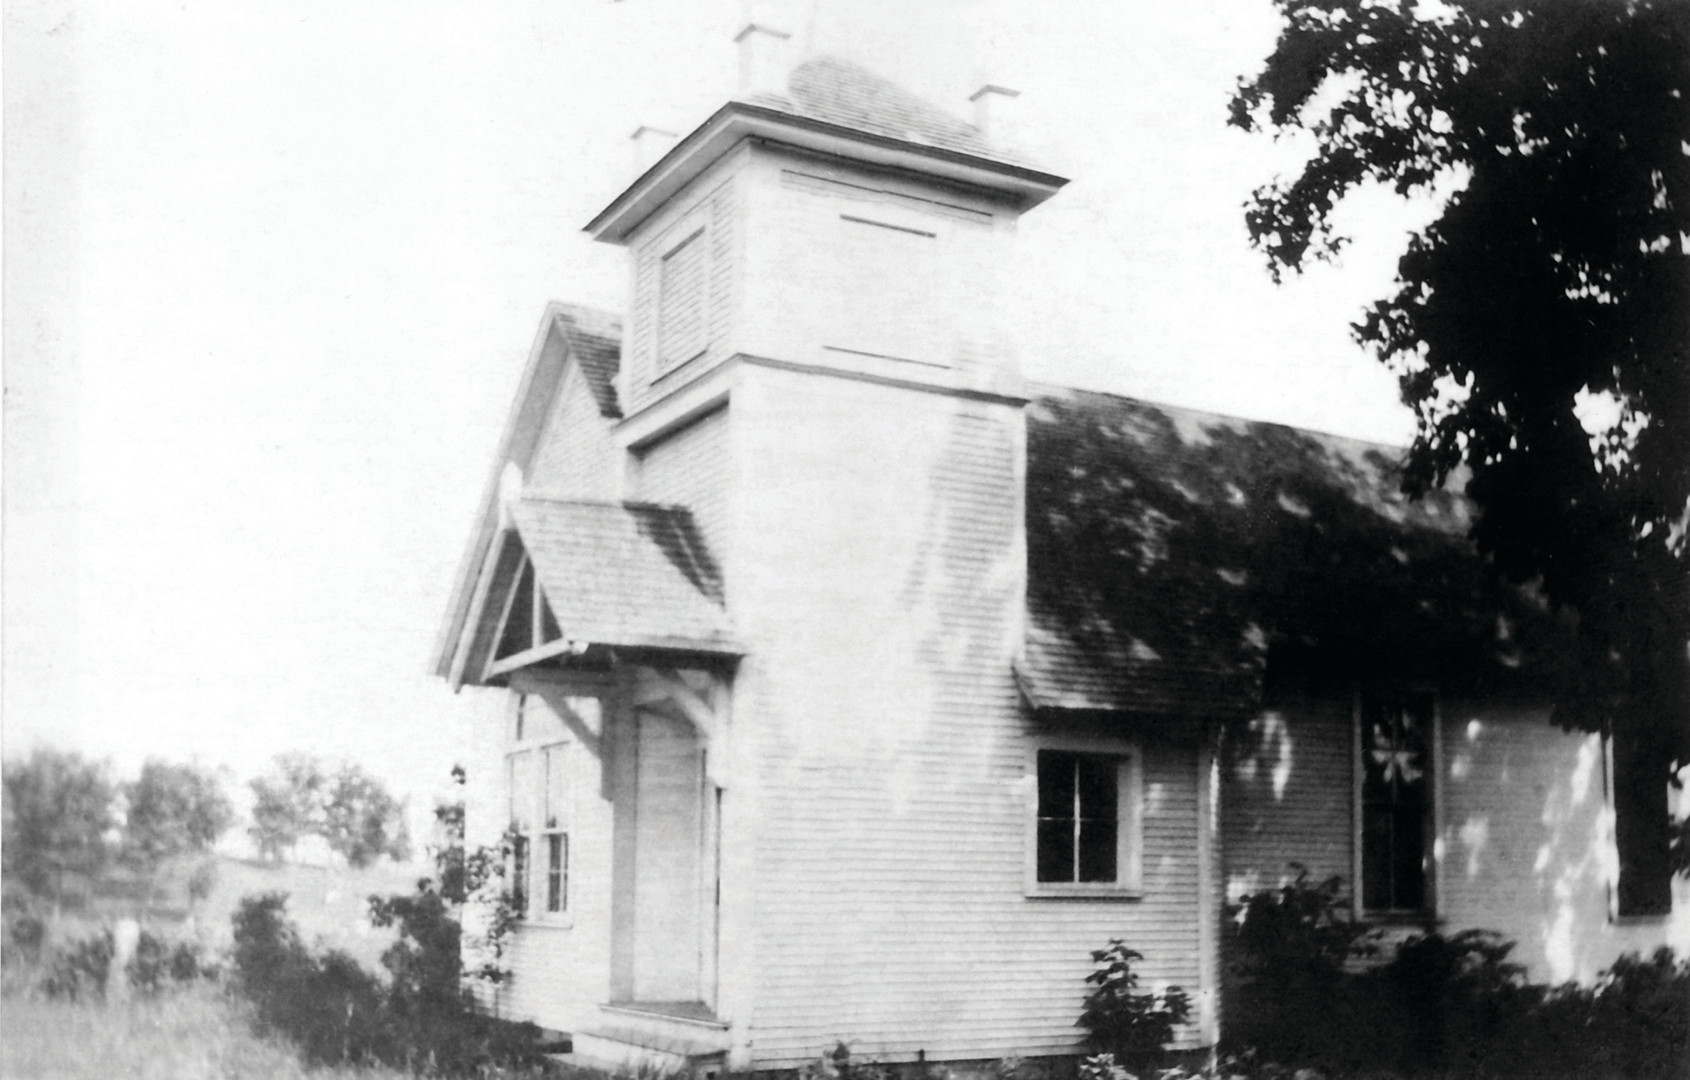 Little White Church in the 1930s